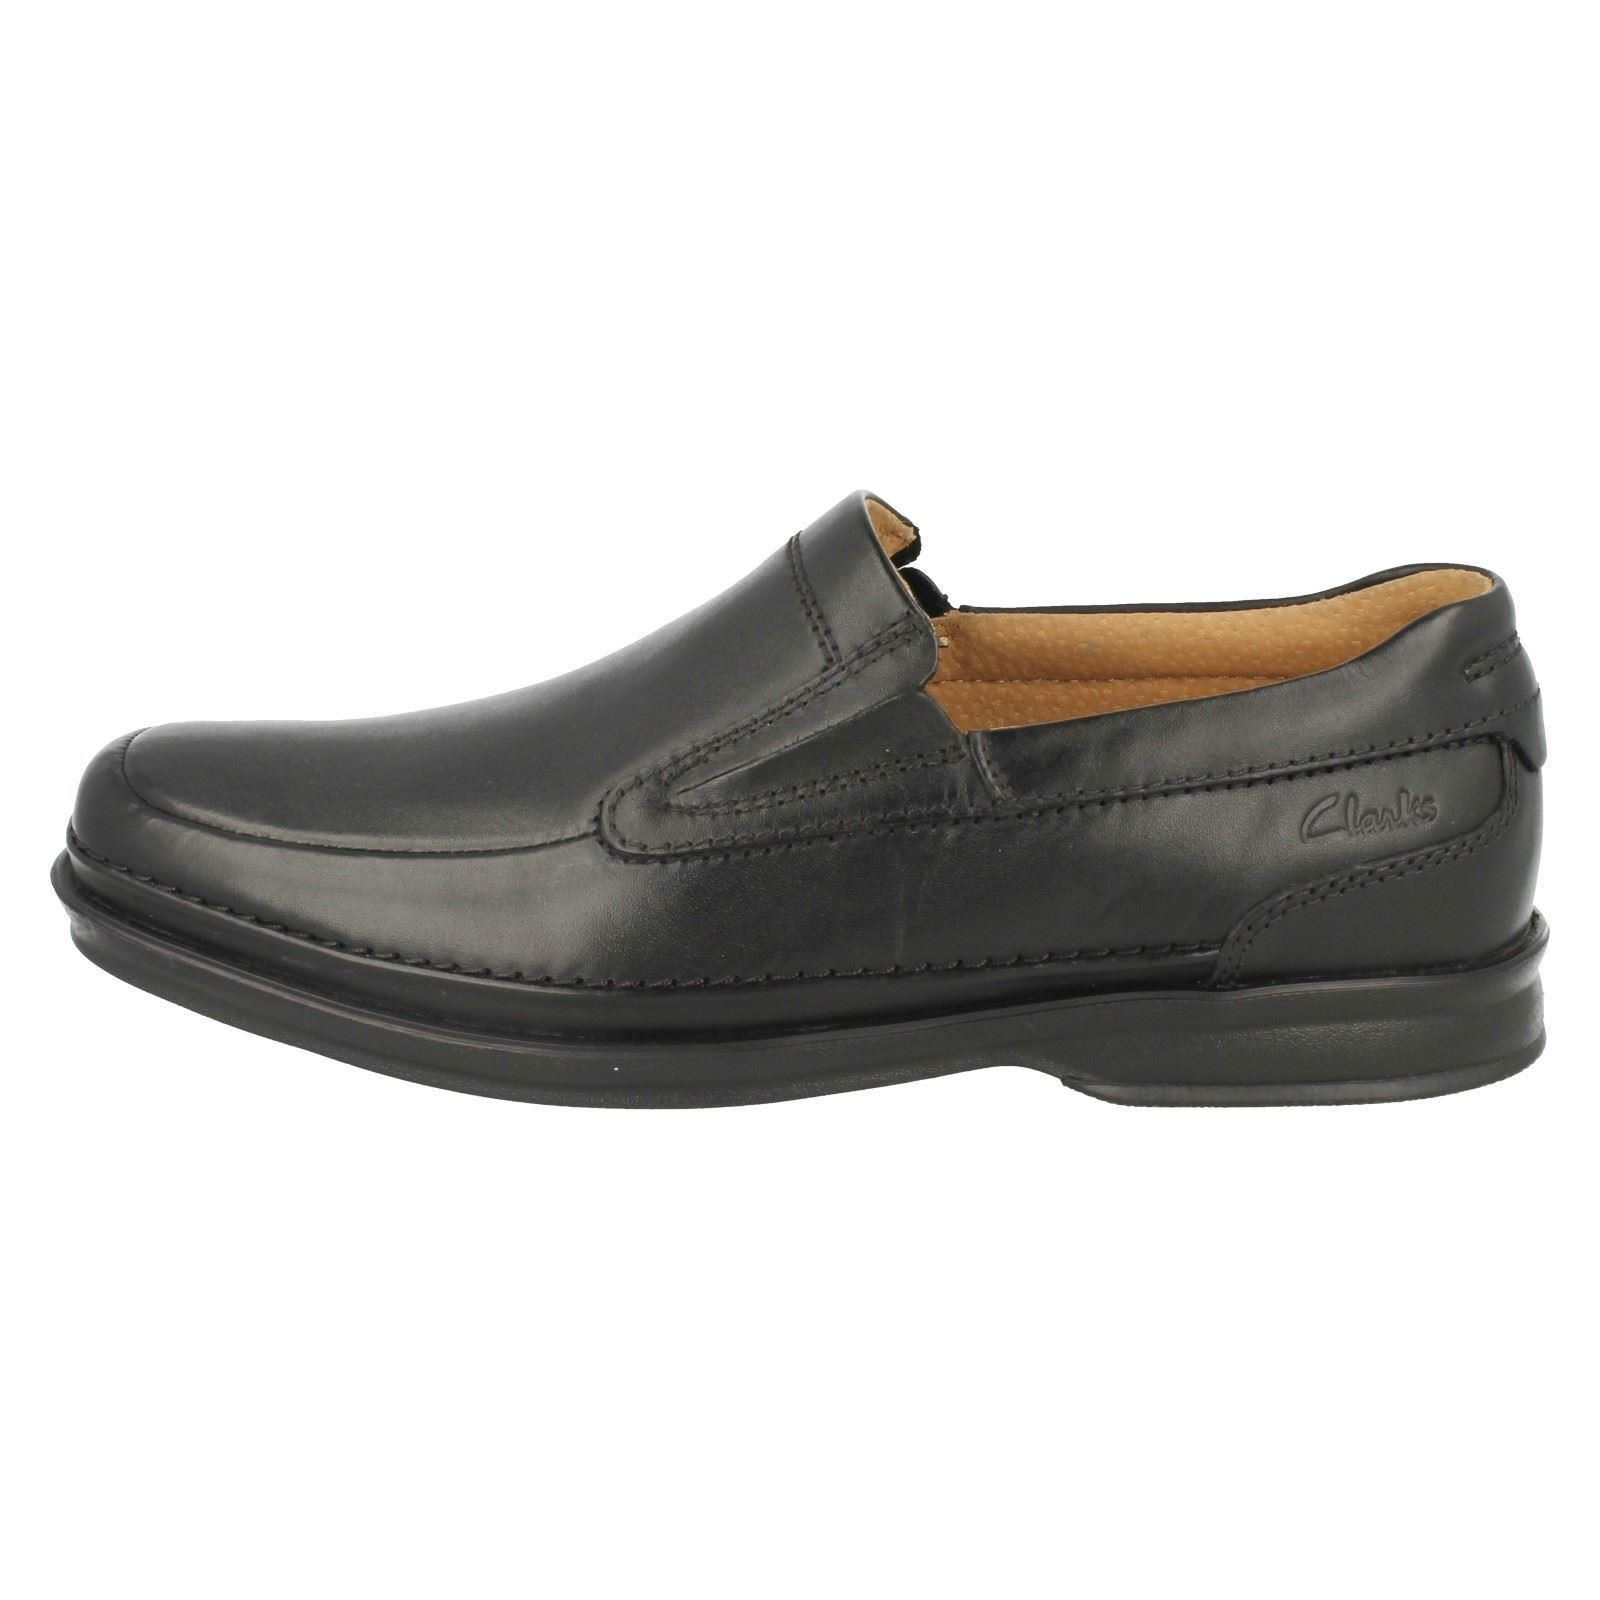 Mens Clarks Scopic Step Wide Slip On Shoes